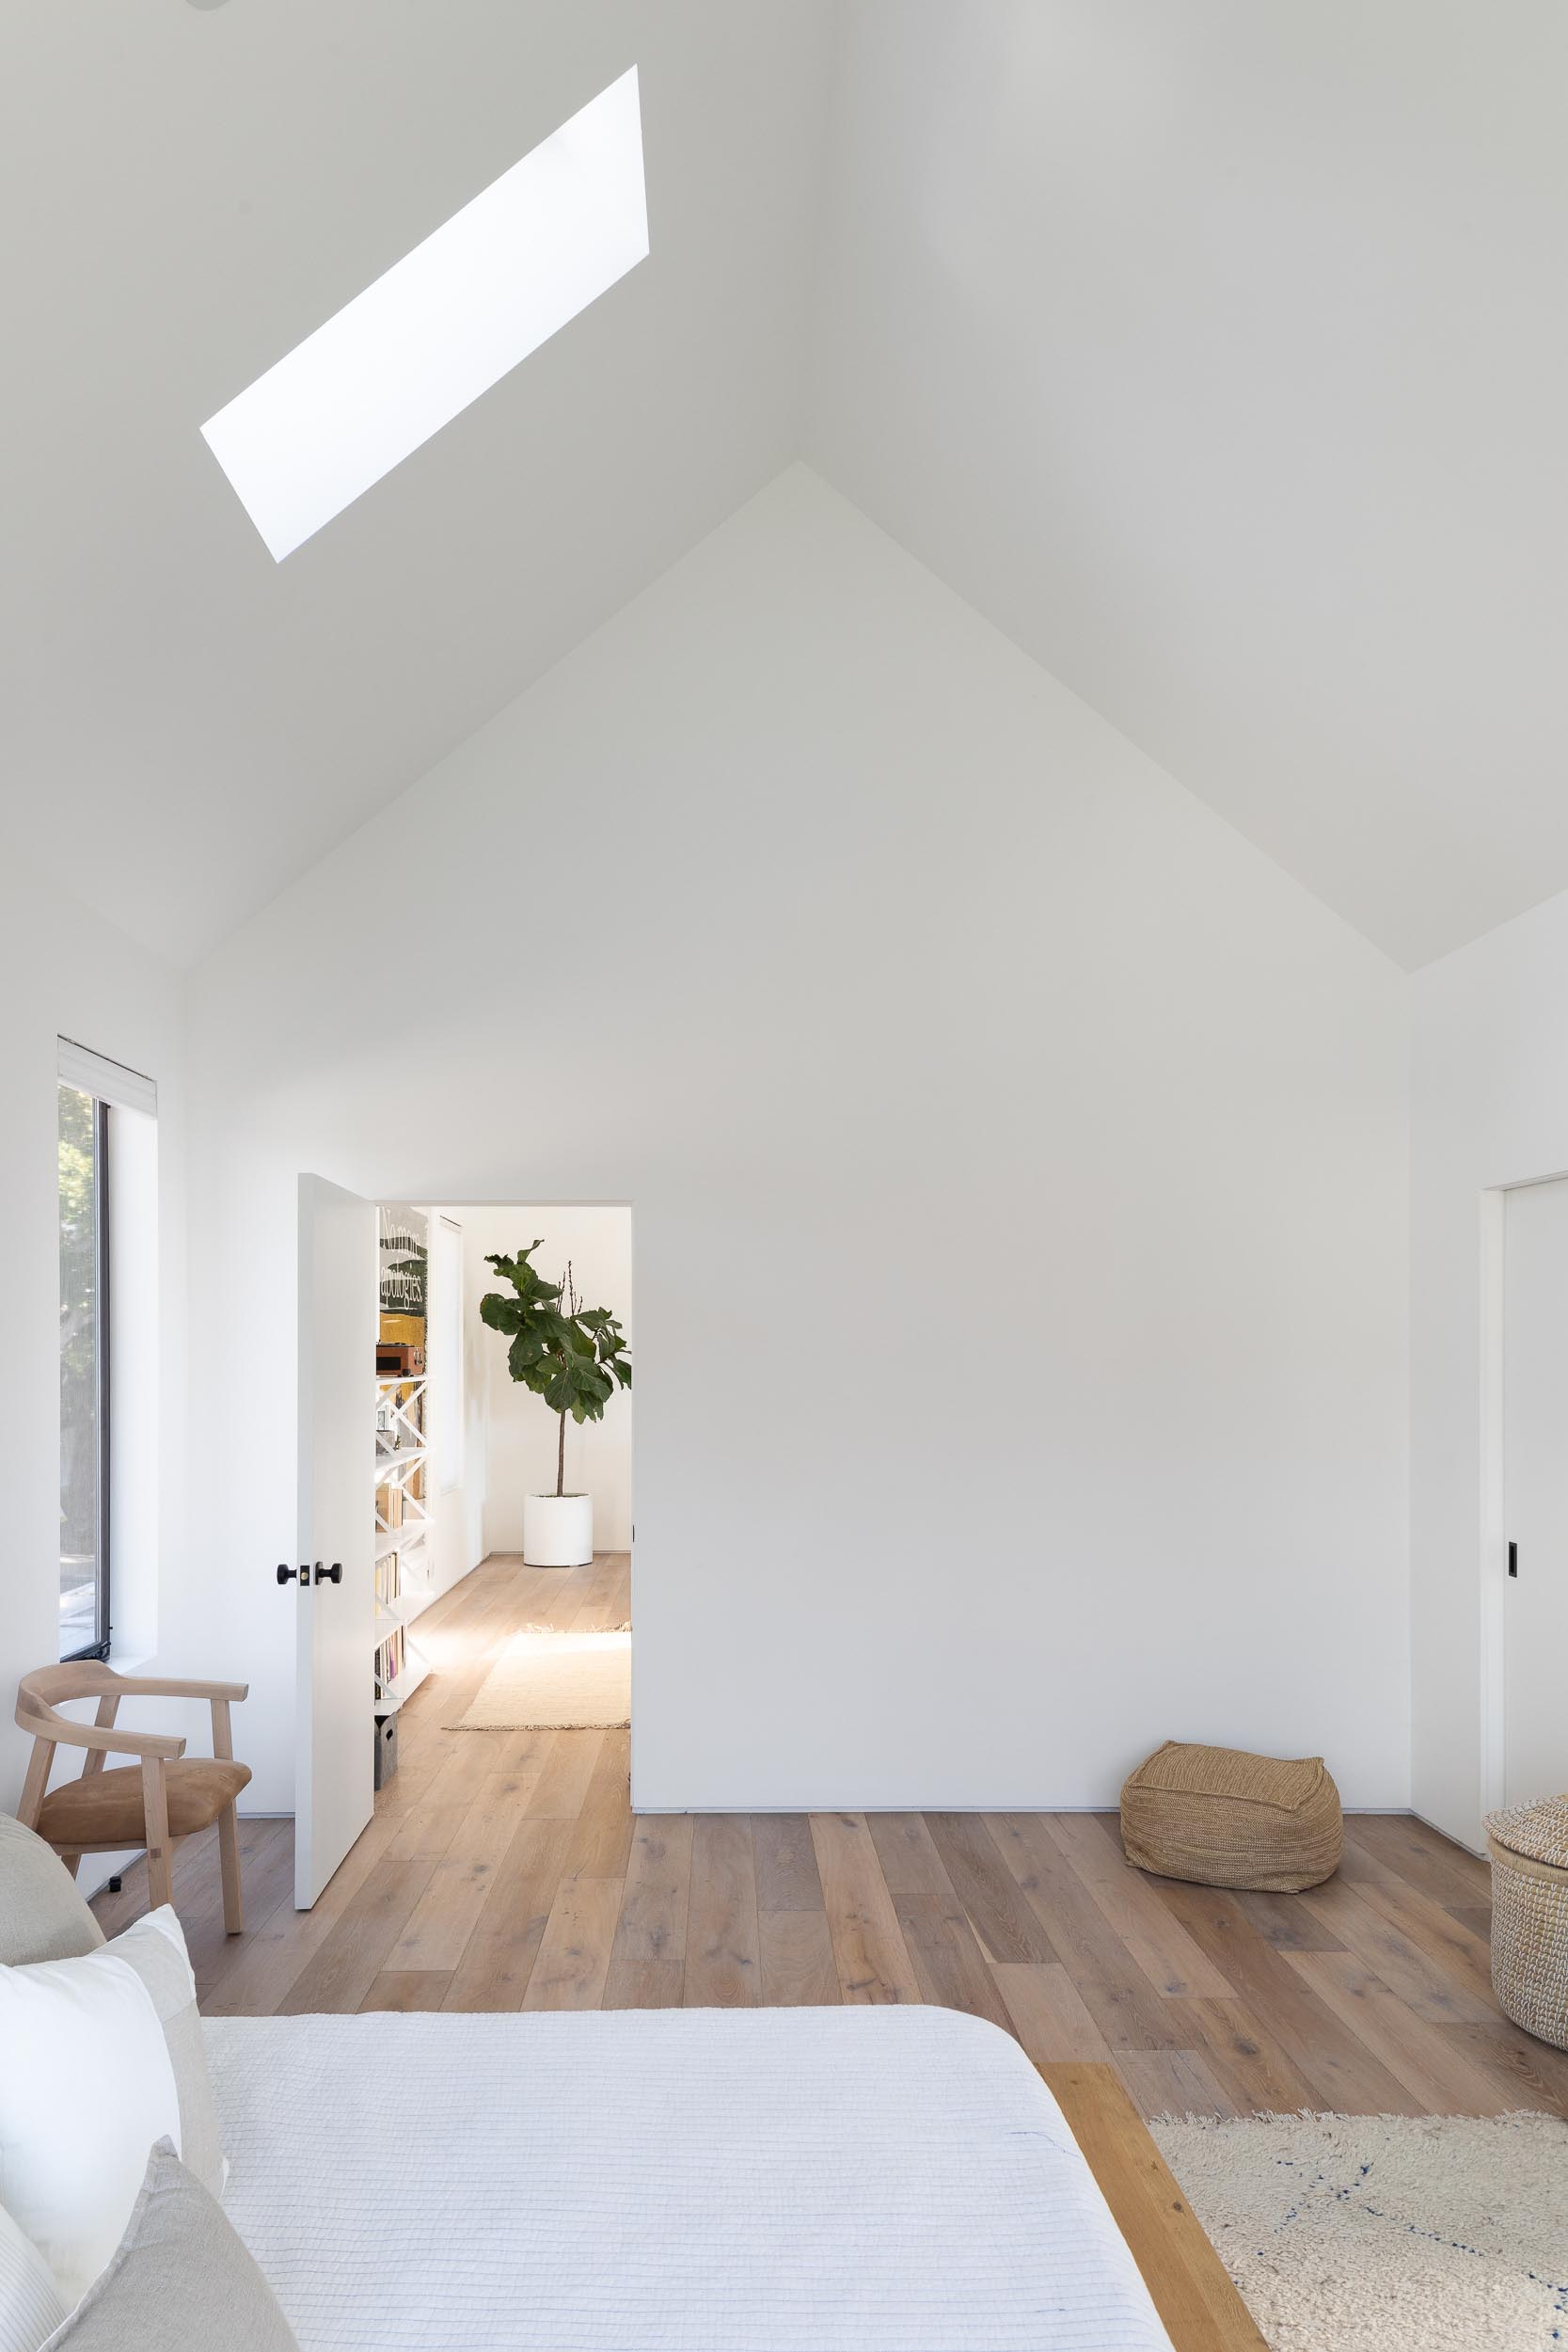 In this modern bedroom, a vaulted ceiling with a skylight makes the room feel large and open, while a wood bed frame and side tables add warmth to the space, and a window seat creates a cozy place to read a book and take in the views of the yard.